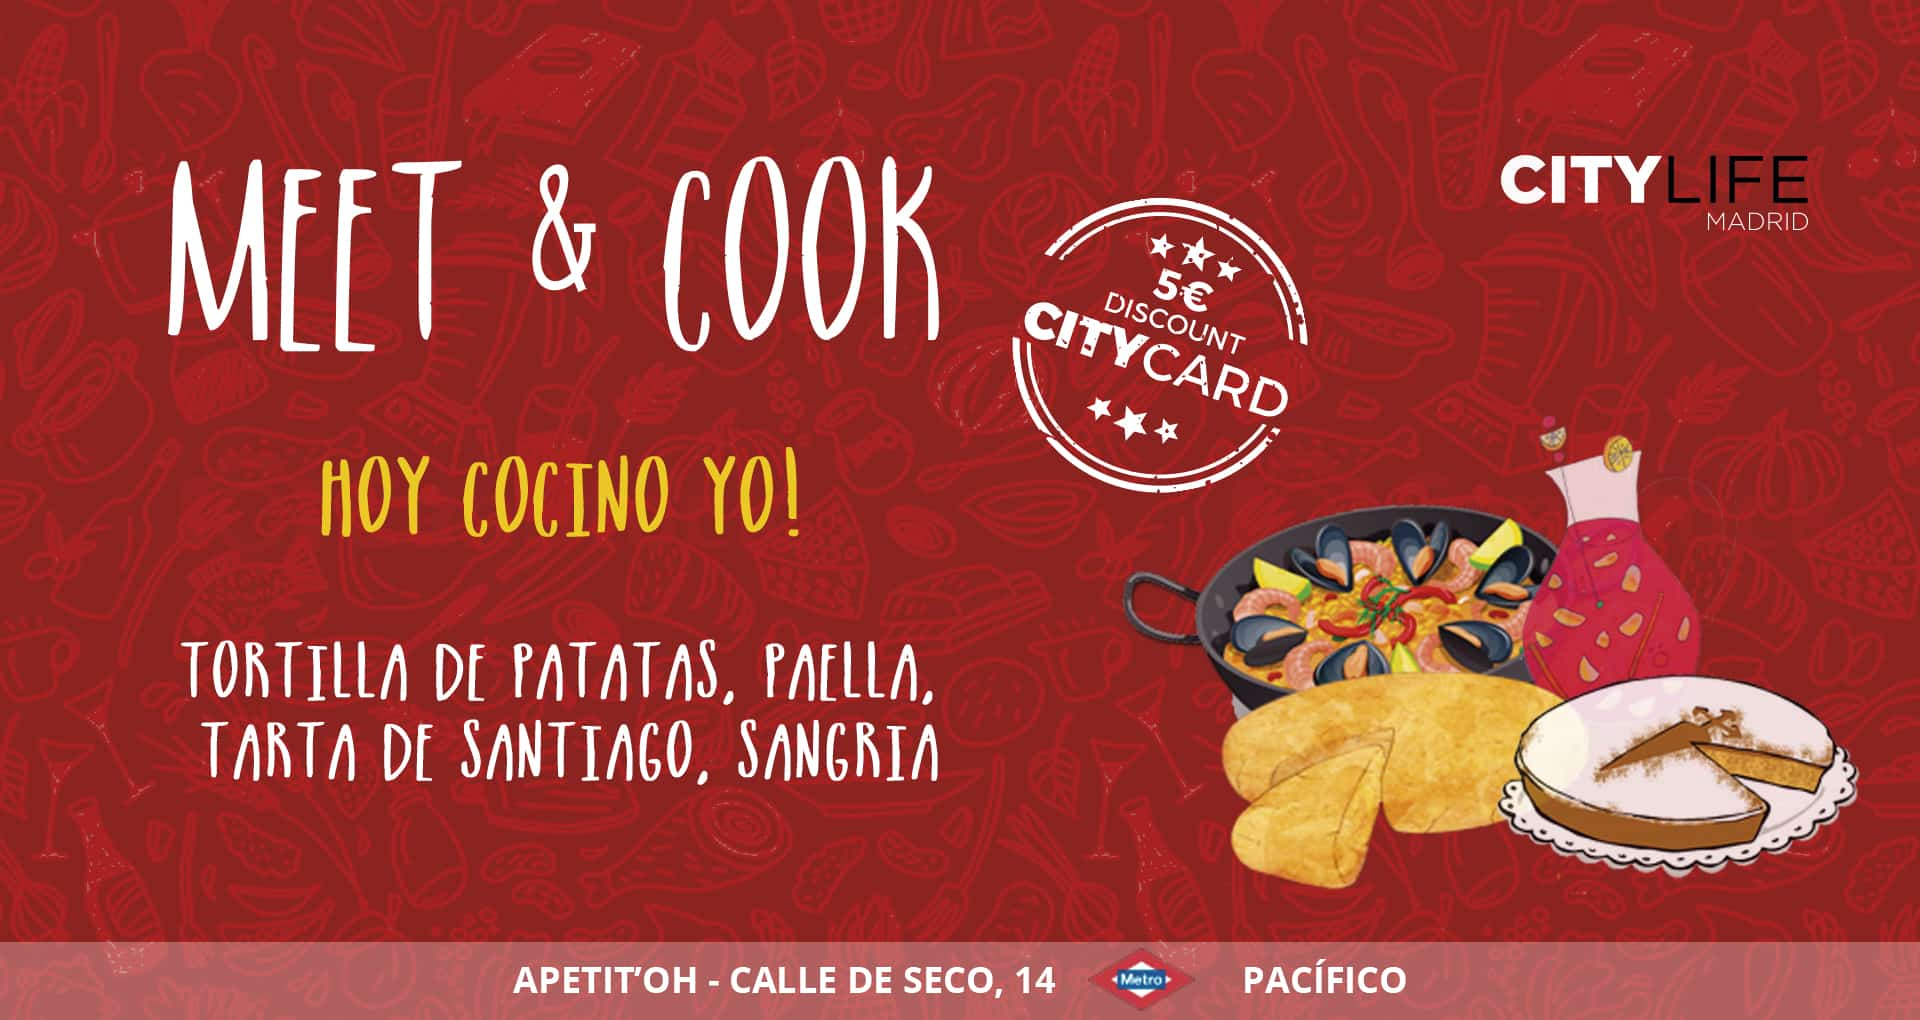 MEET & COOK: Hoy cocino yo - Traditional Spanish Dishes & Sangría!